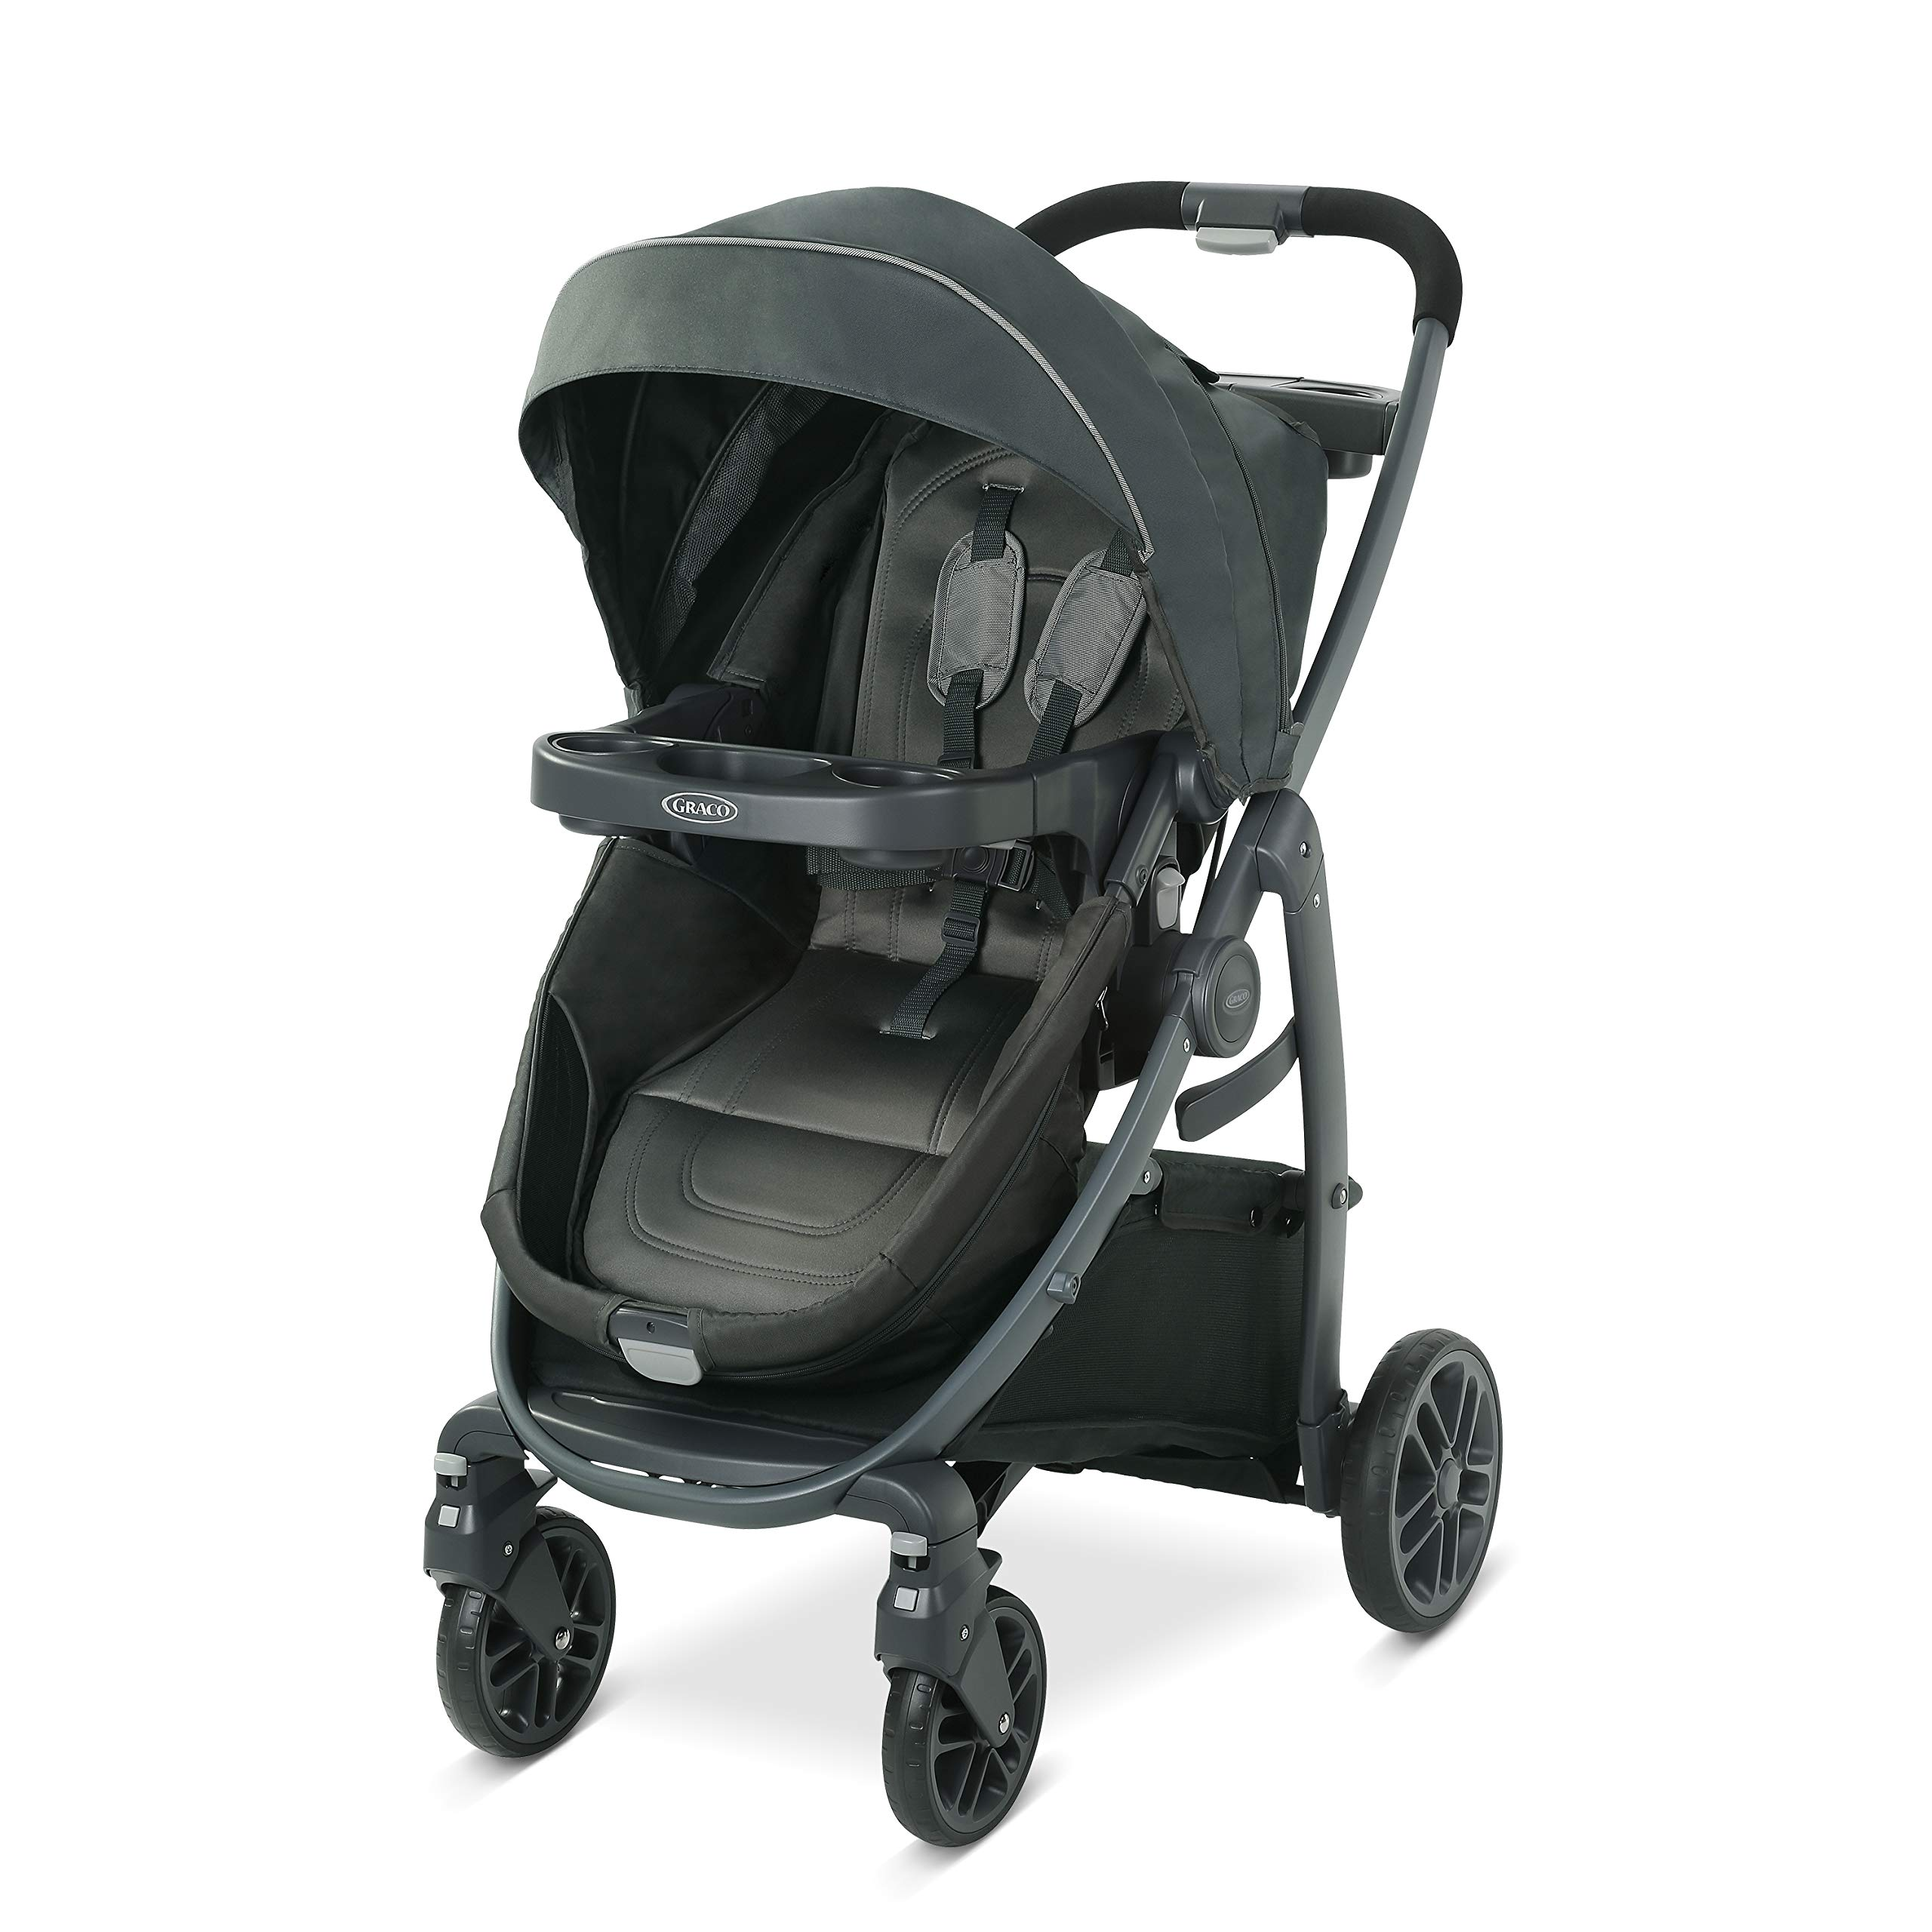 Graco Modes Bassinet Stroller, Includes Reversible Seat, Cutler by Graco